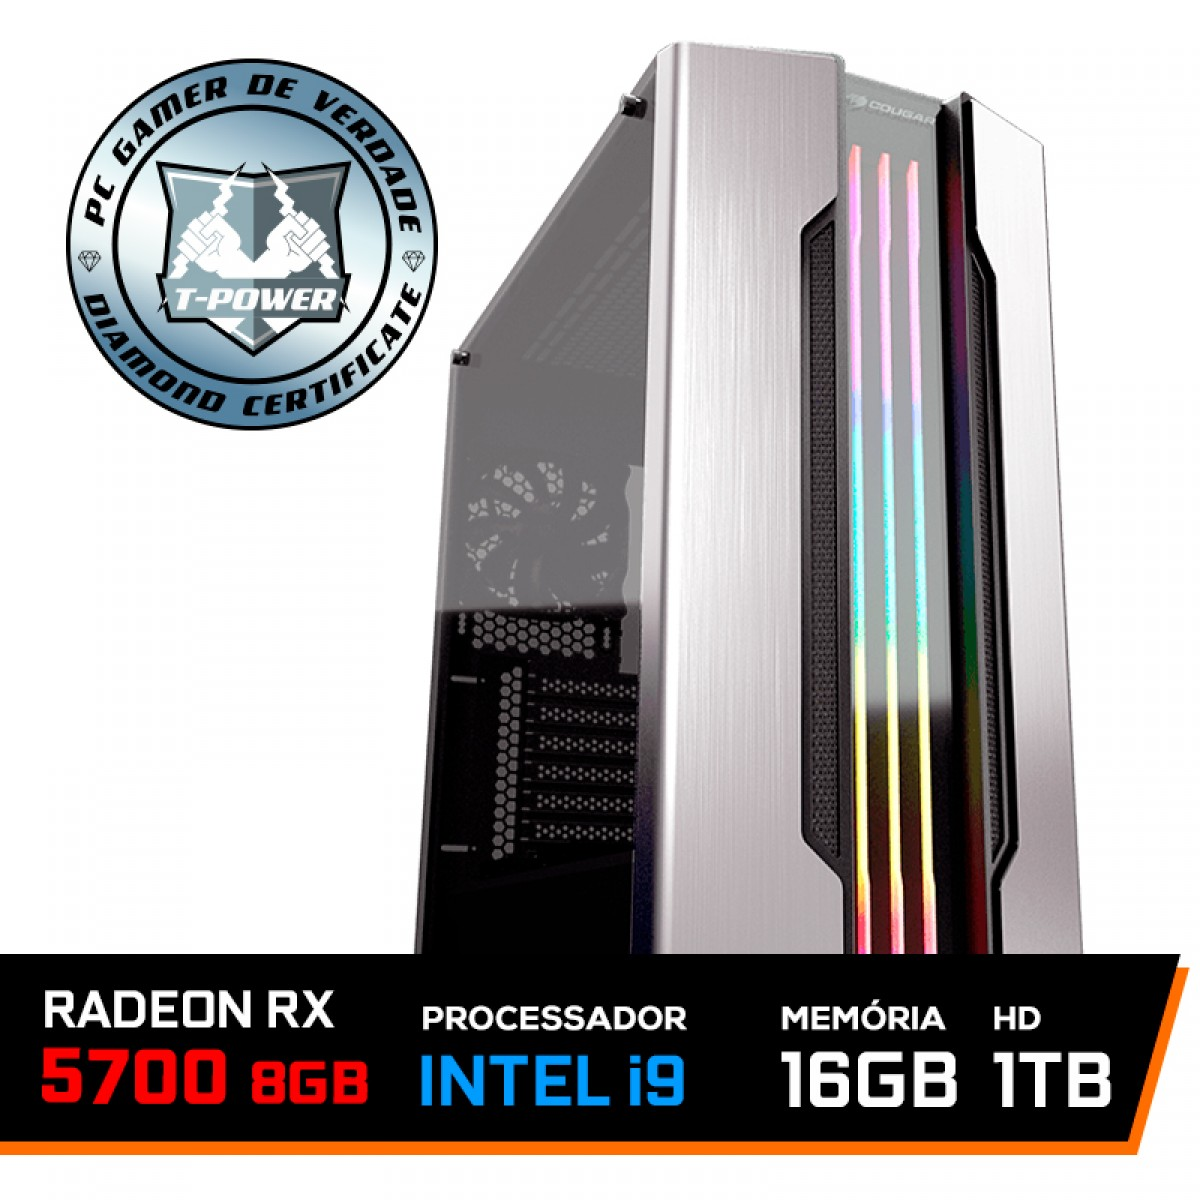 Pc Gamer T-Power Inferno LVL-1 Intel I9 9900KF 3.60GHz / Radeon RX 5700 8GB / DDR4 16GB / HD 1TB / 750W